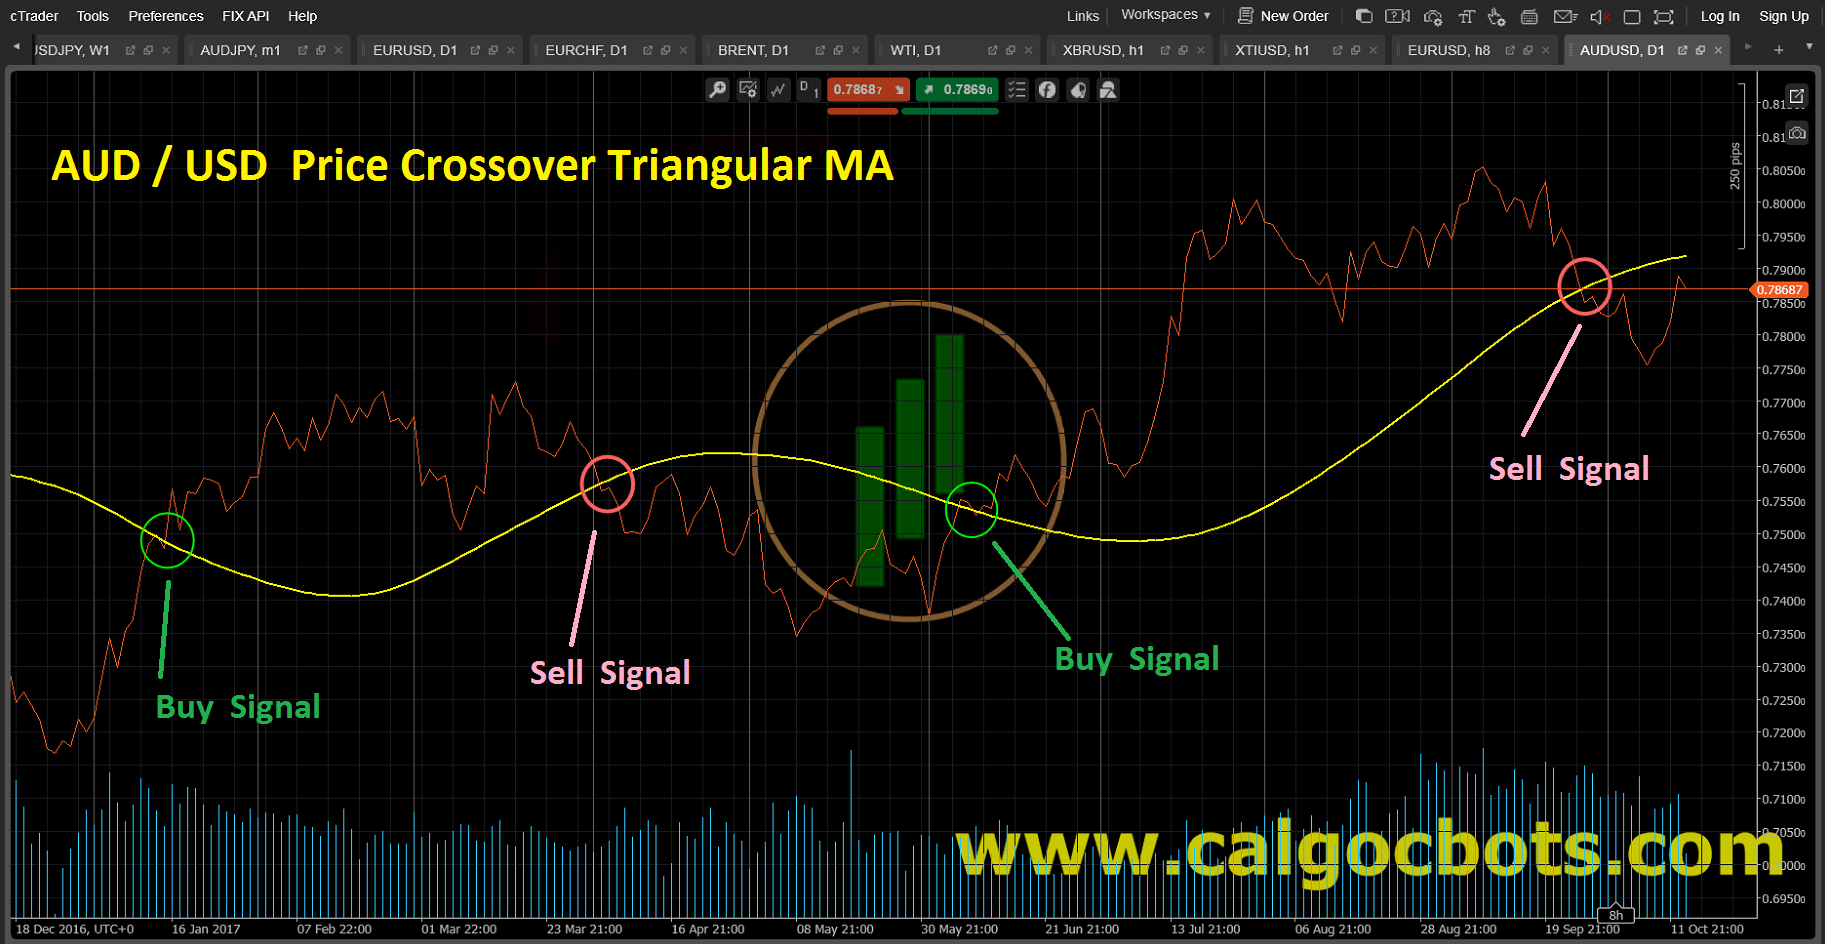 Price Crossover Triangular MA Line_Chart_AUD_USD_cAlgo_cBots_cTrader_01